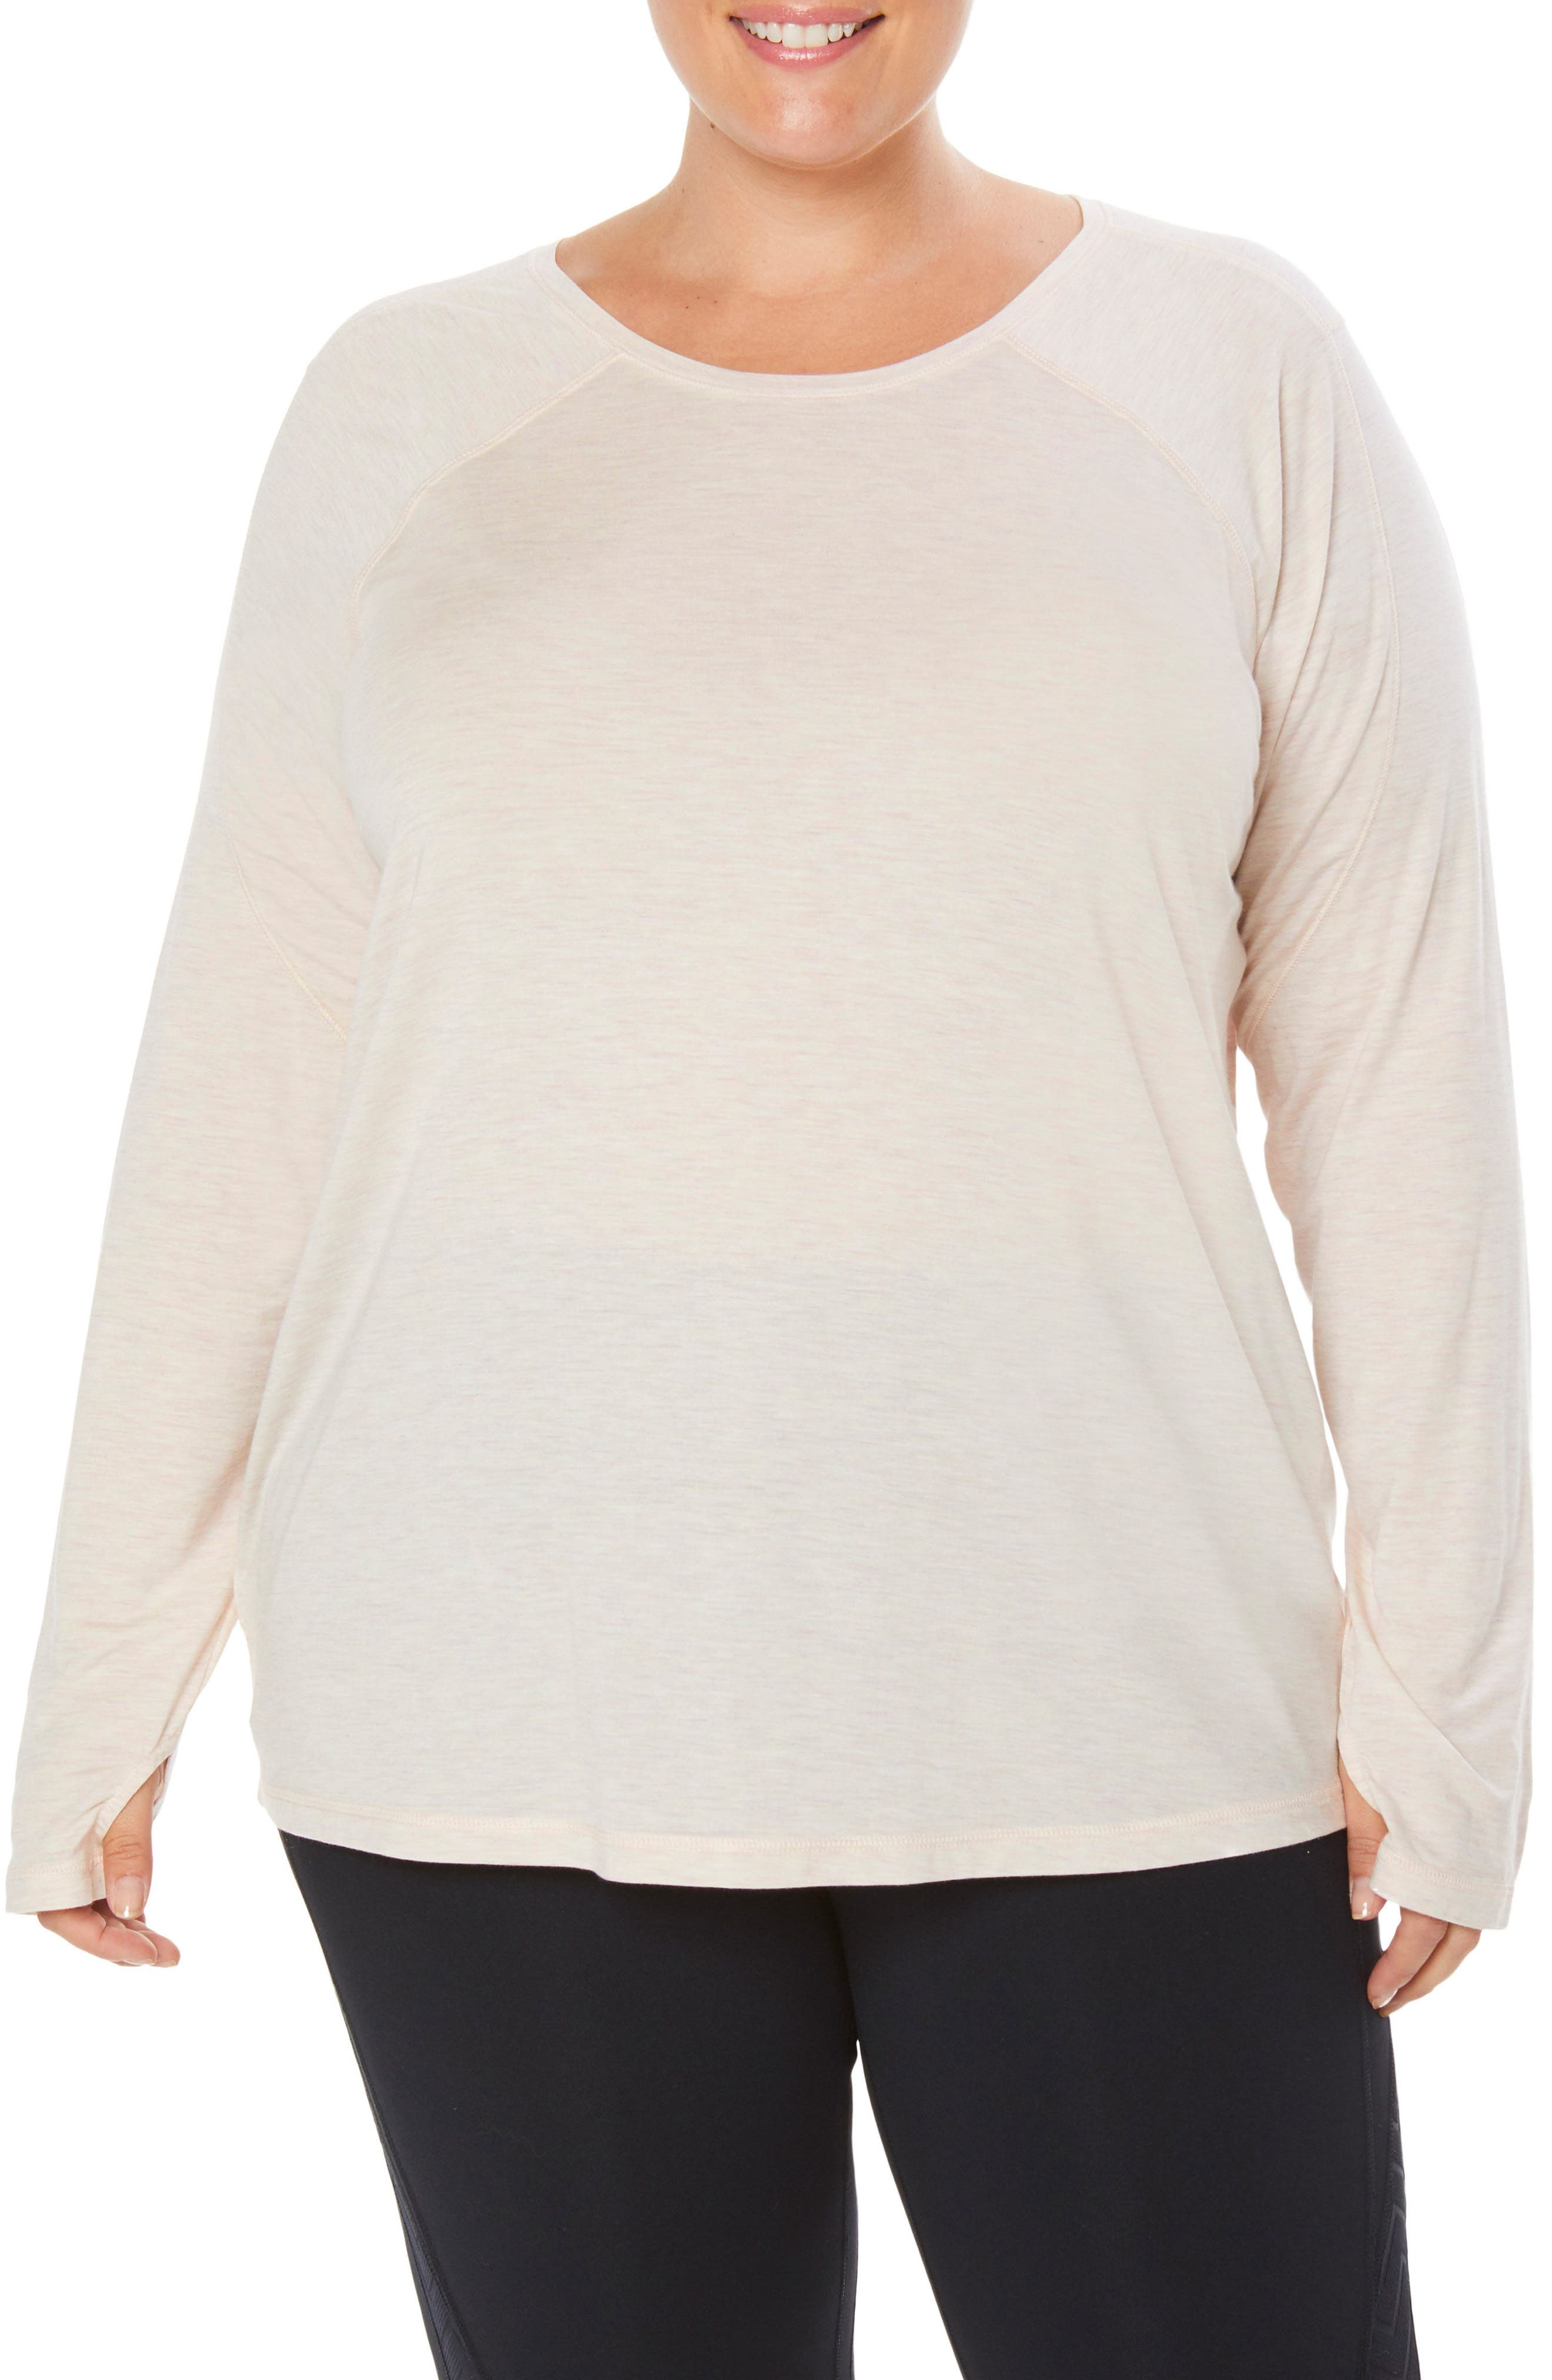 Shape Performance Tee,                             Main thumbnail 1, color,                             650